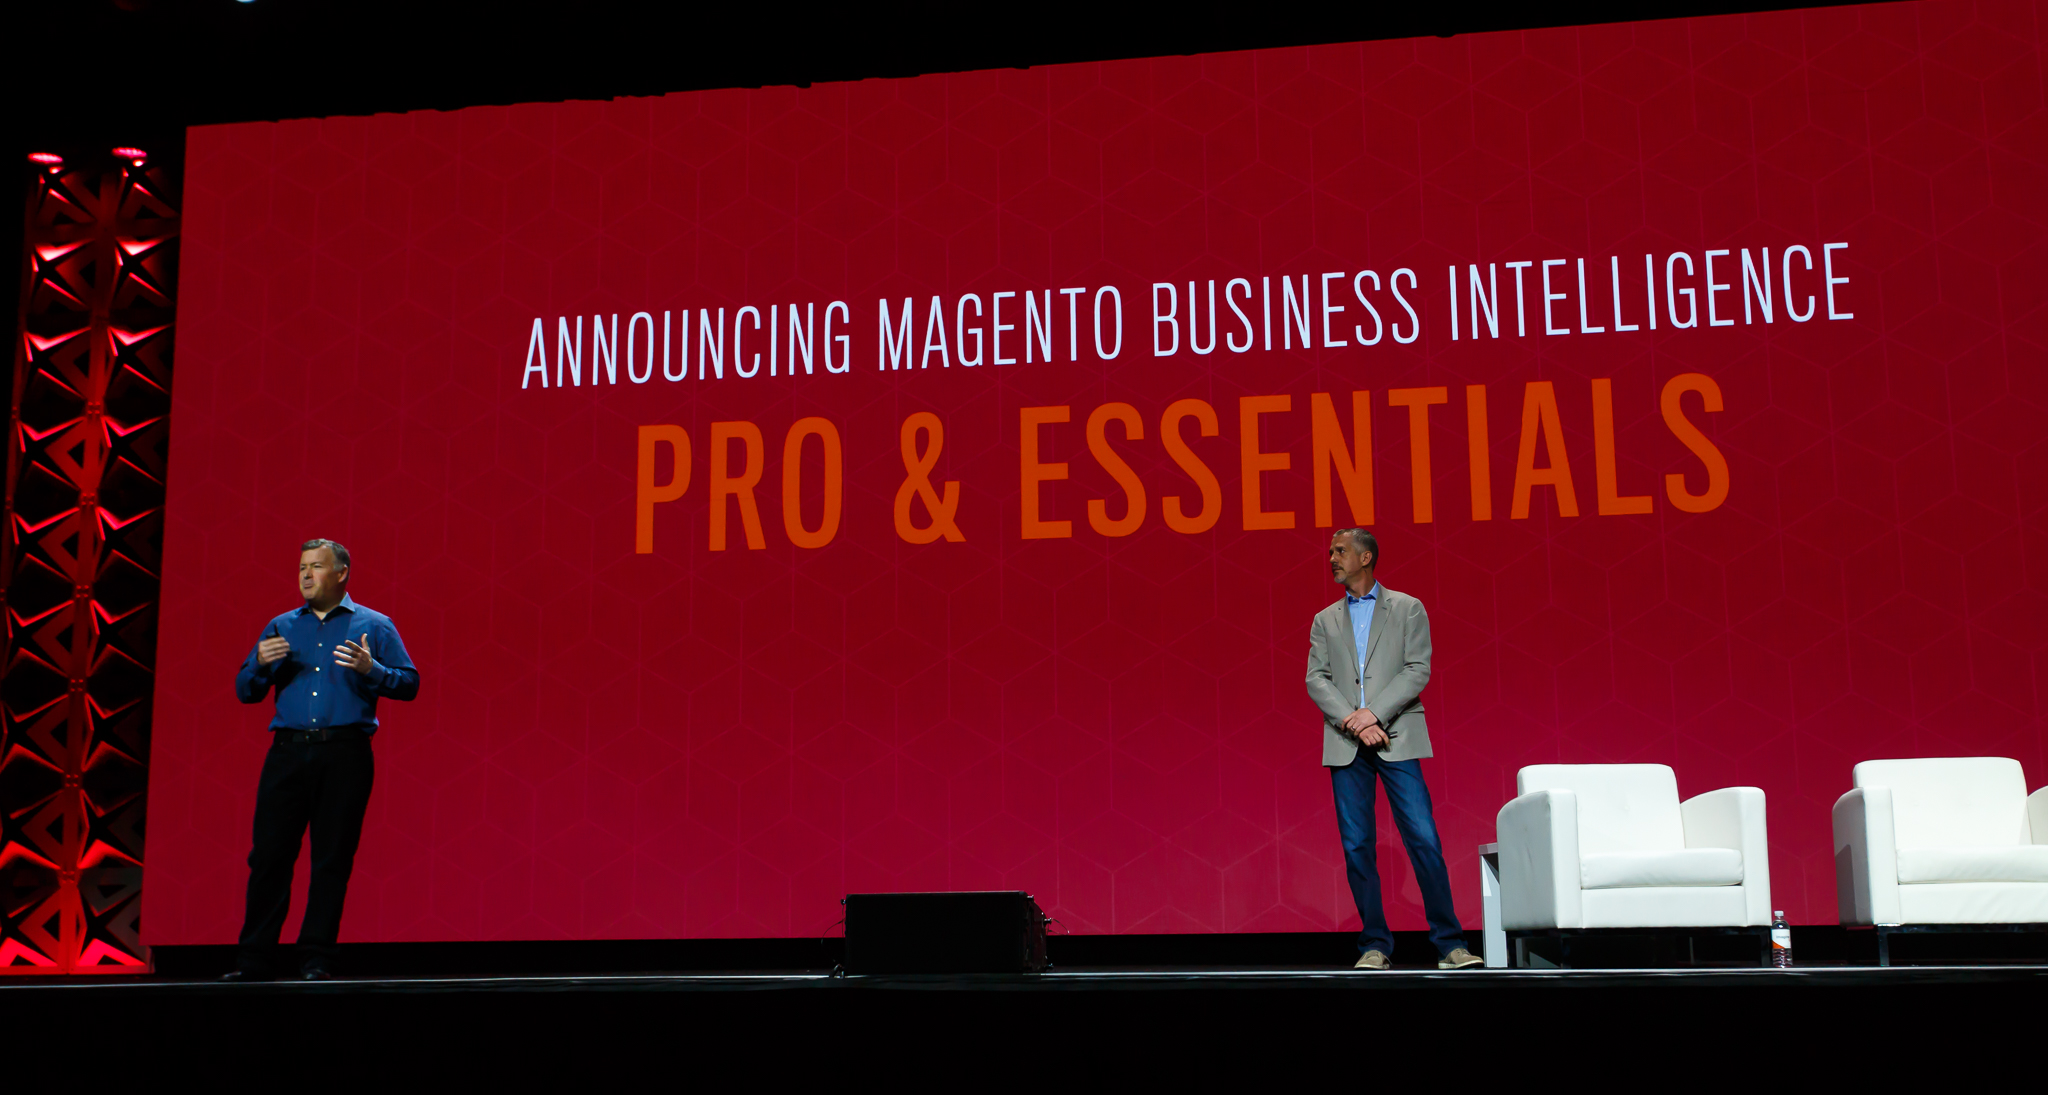 Magento Business Intelligence Essentials Annoucement